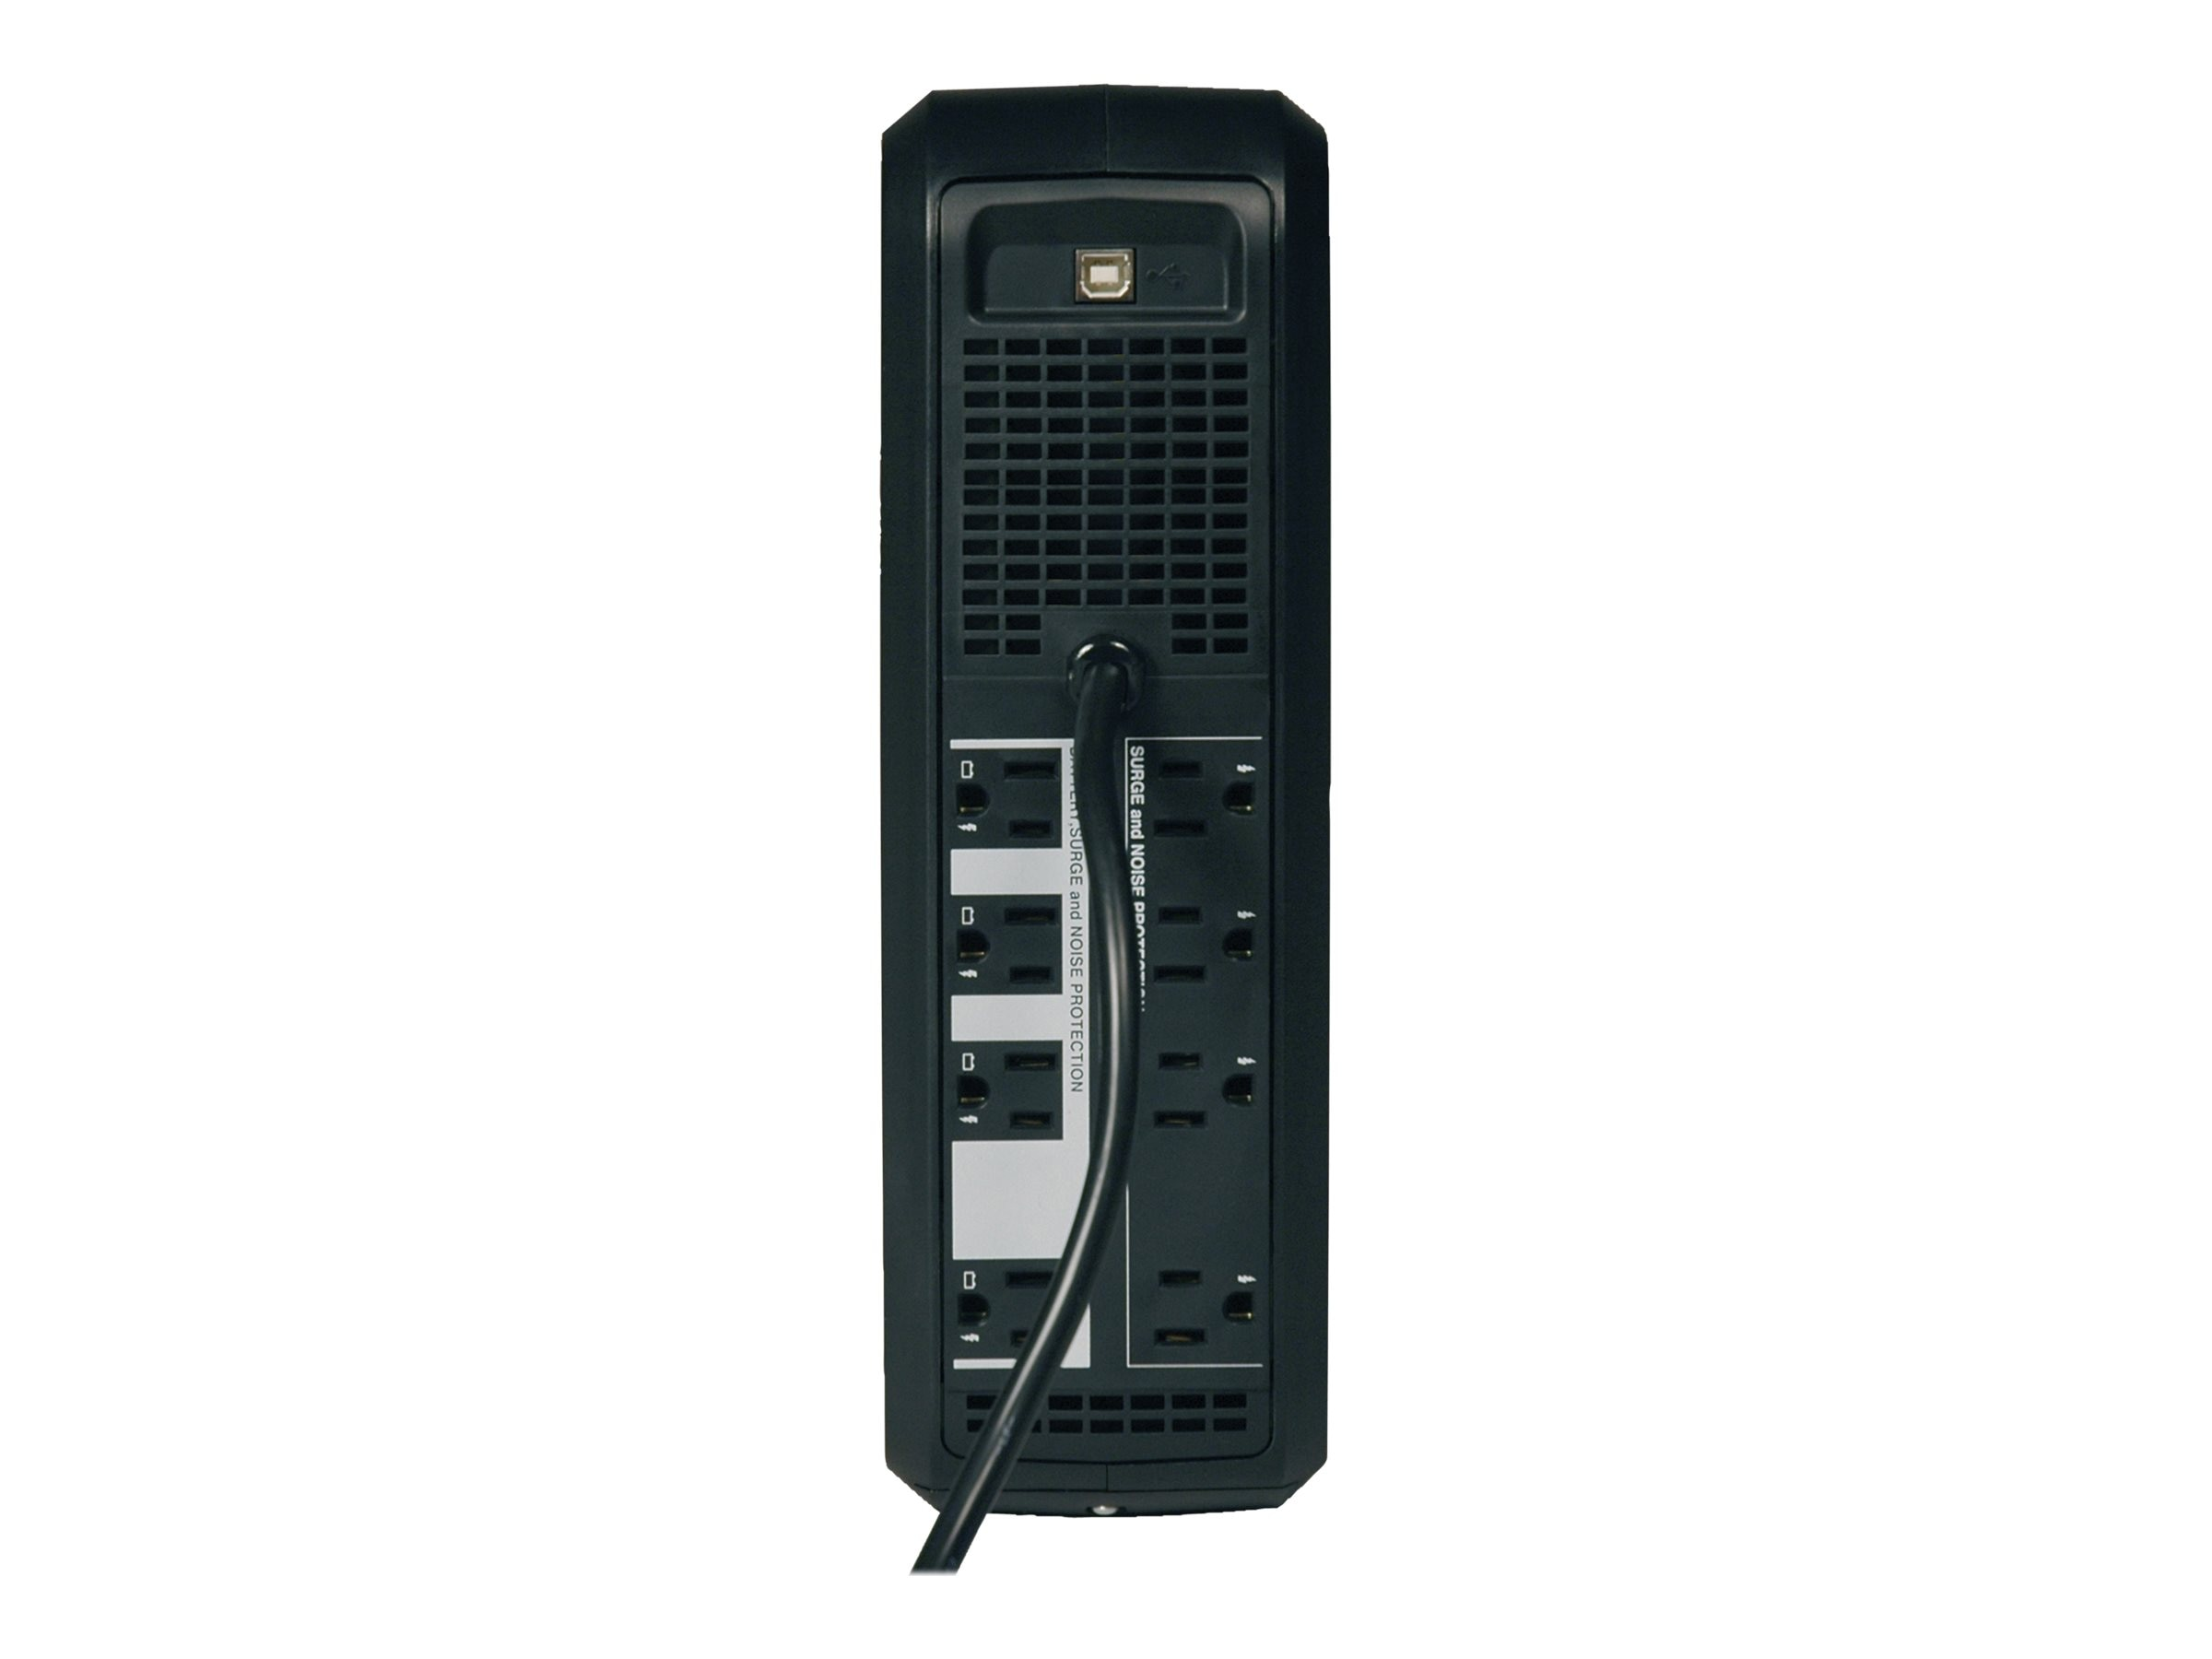 Tripp Lite 650VA UPS Omni Smart Rack Tower Digital LCD Line-Interactive (8) Outlet, OMNI650LCD